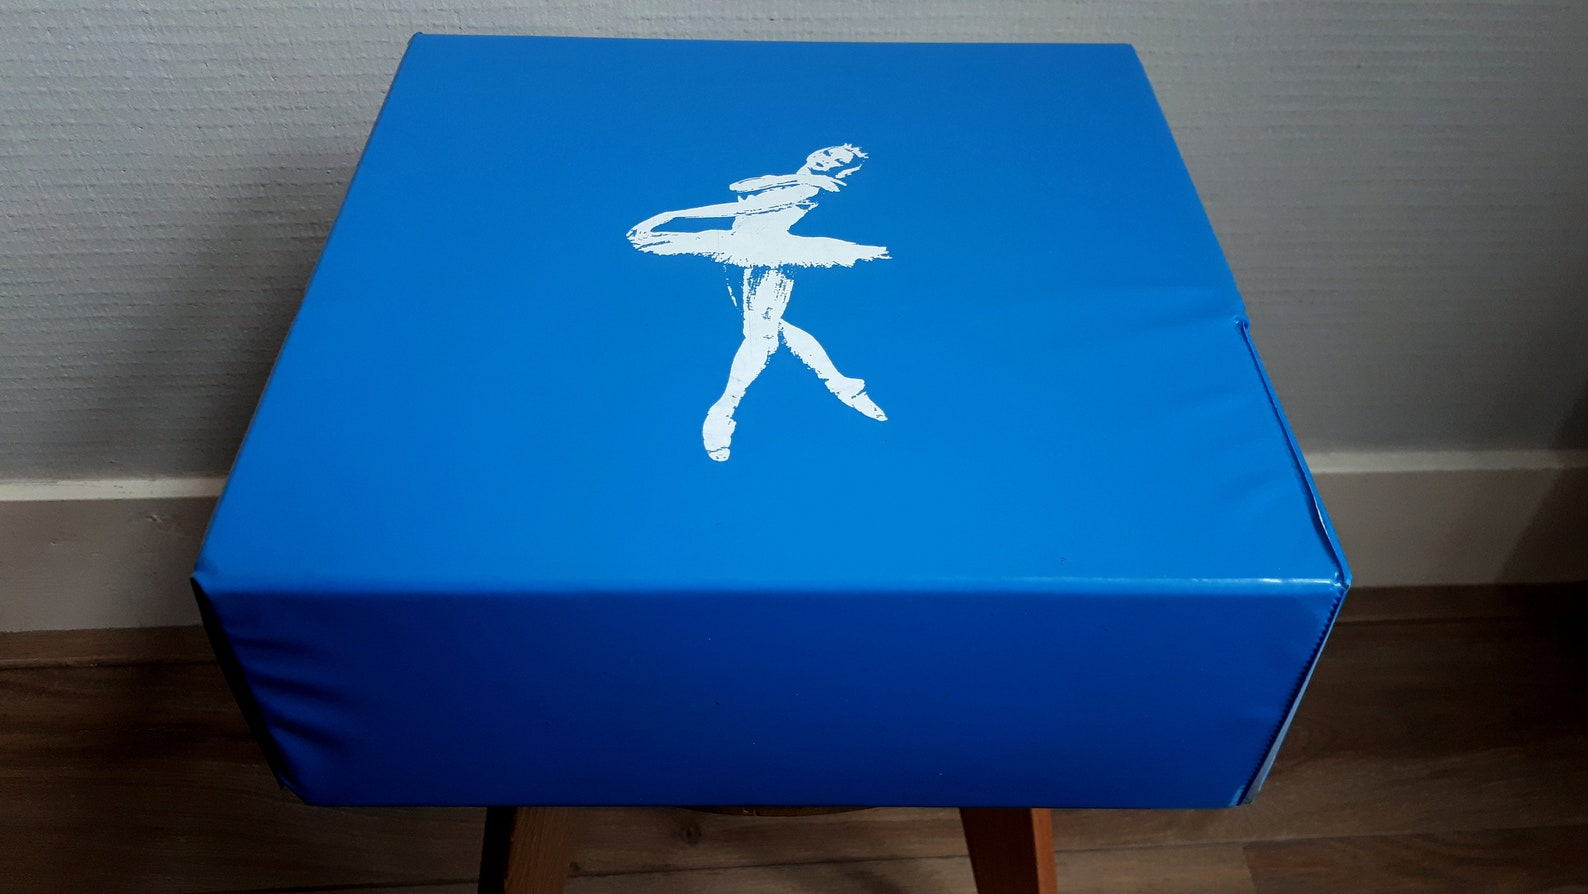 mattel ballet bag * vinyl * blue * shoulder bag * 1960 * ballet shoes box * dance * retro * vintage